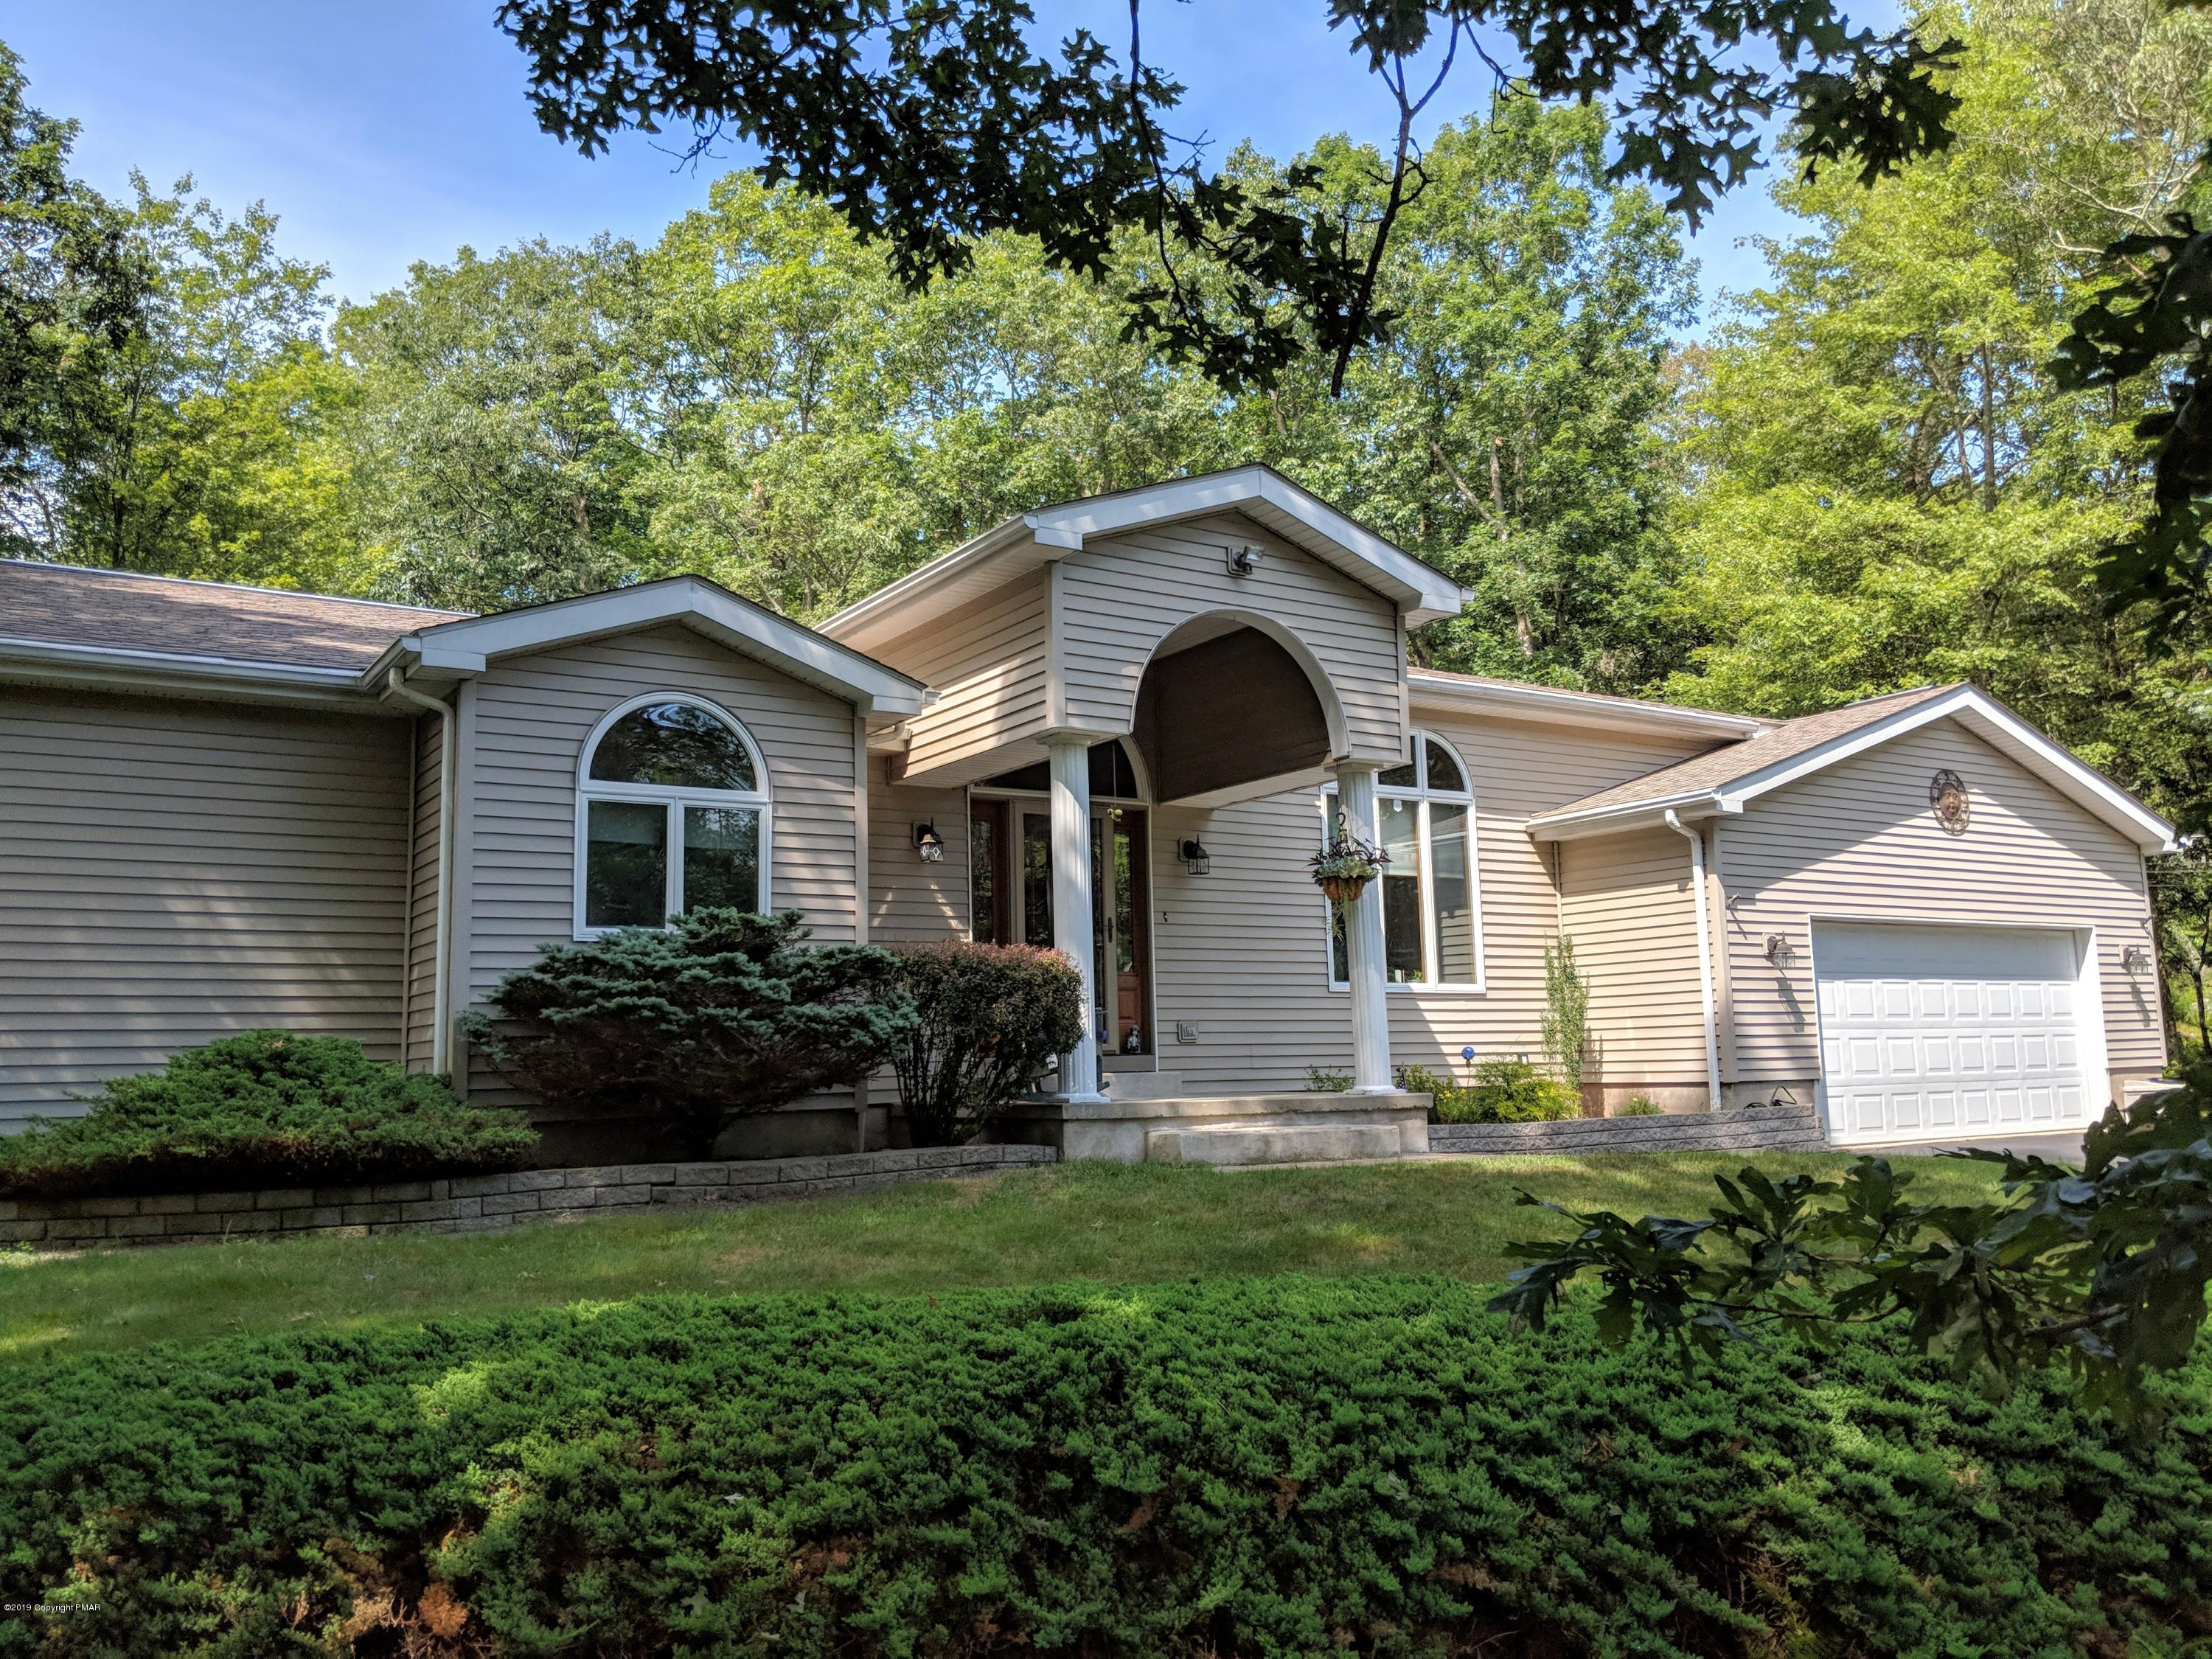 114 Pinto Ln, Lords Valley, PA 18428